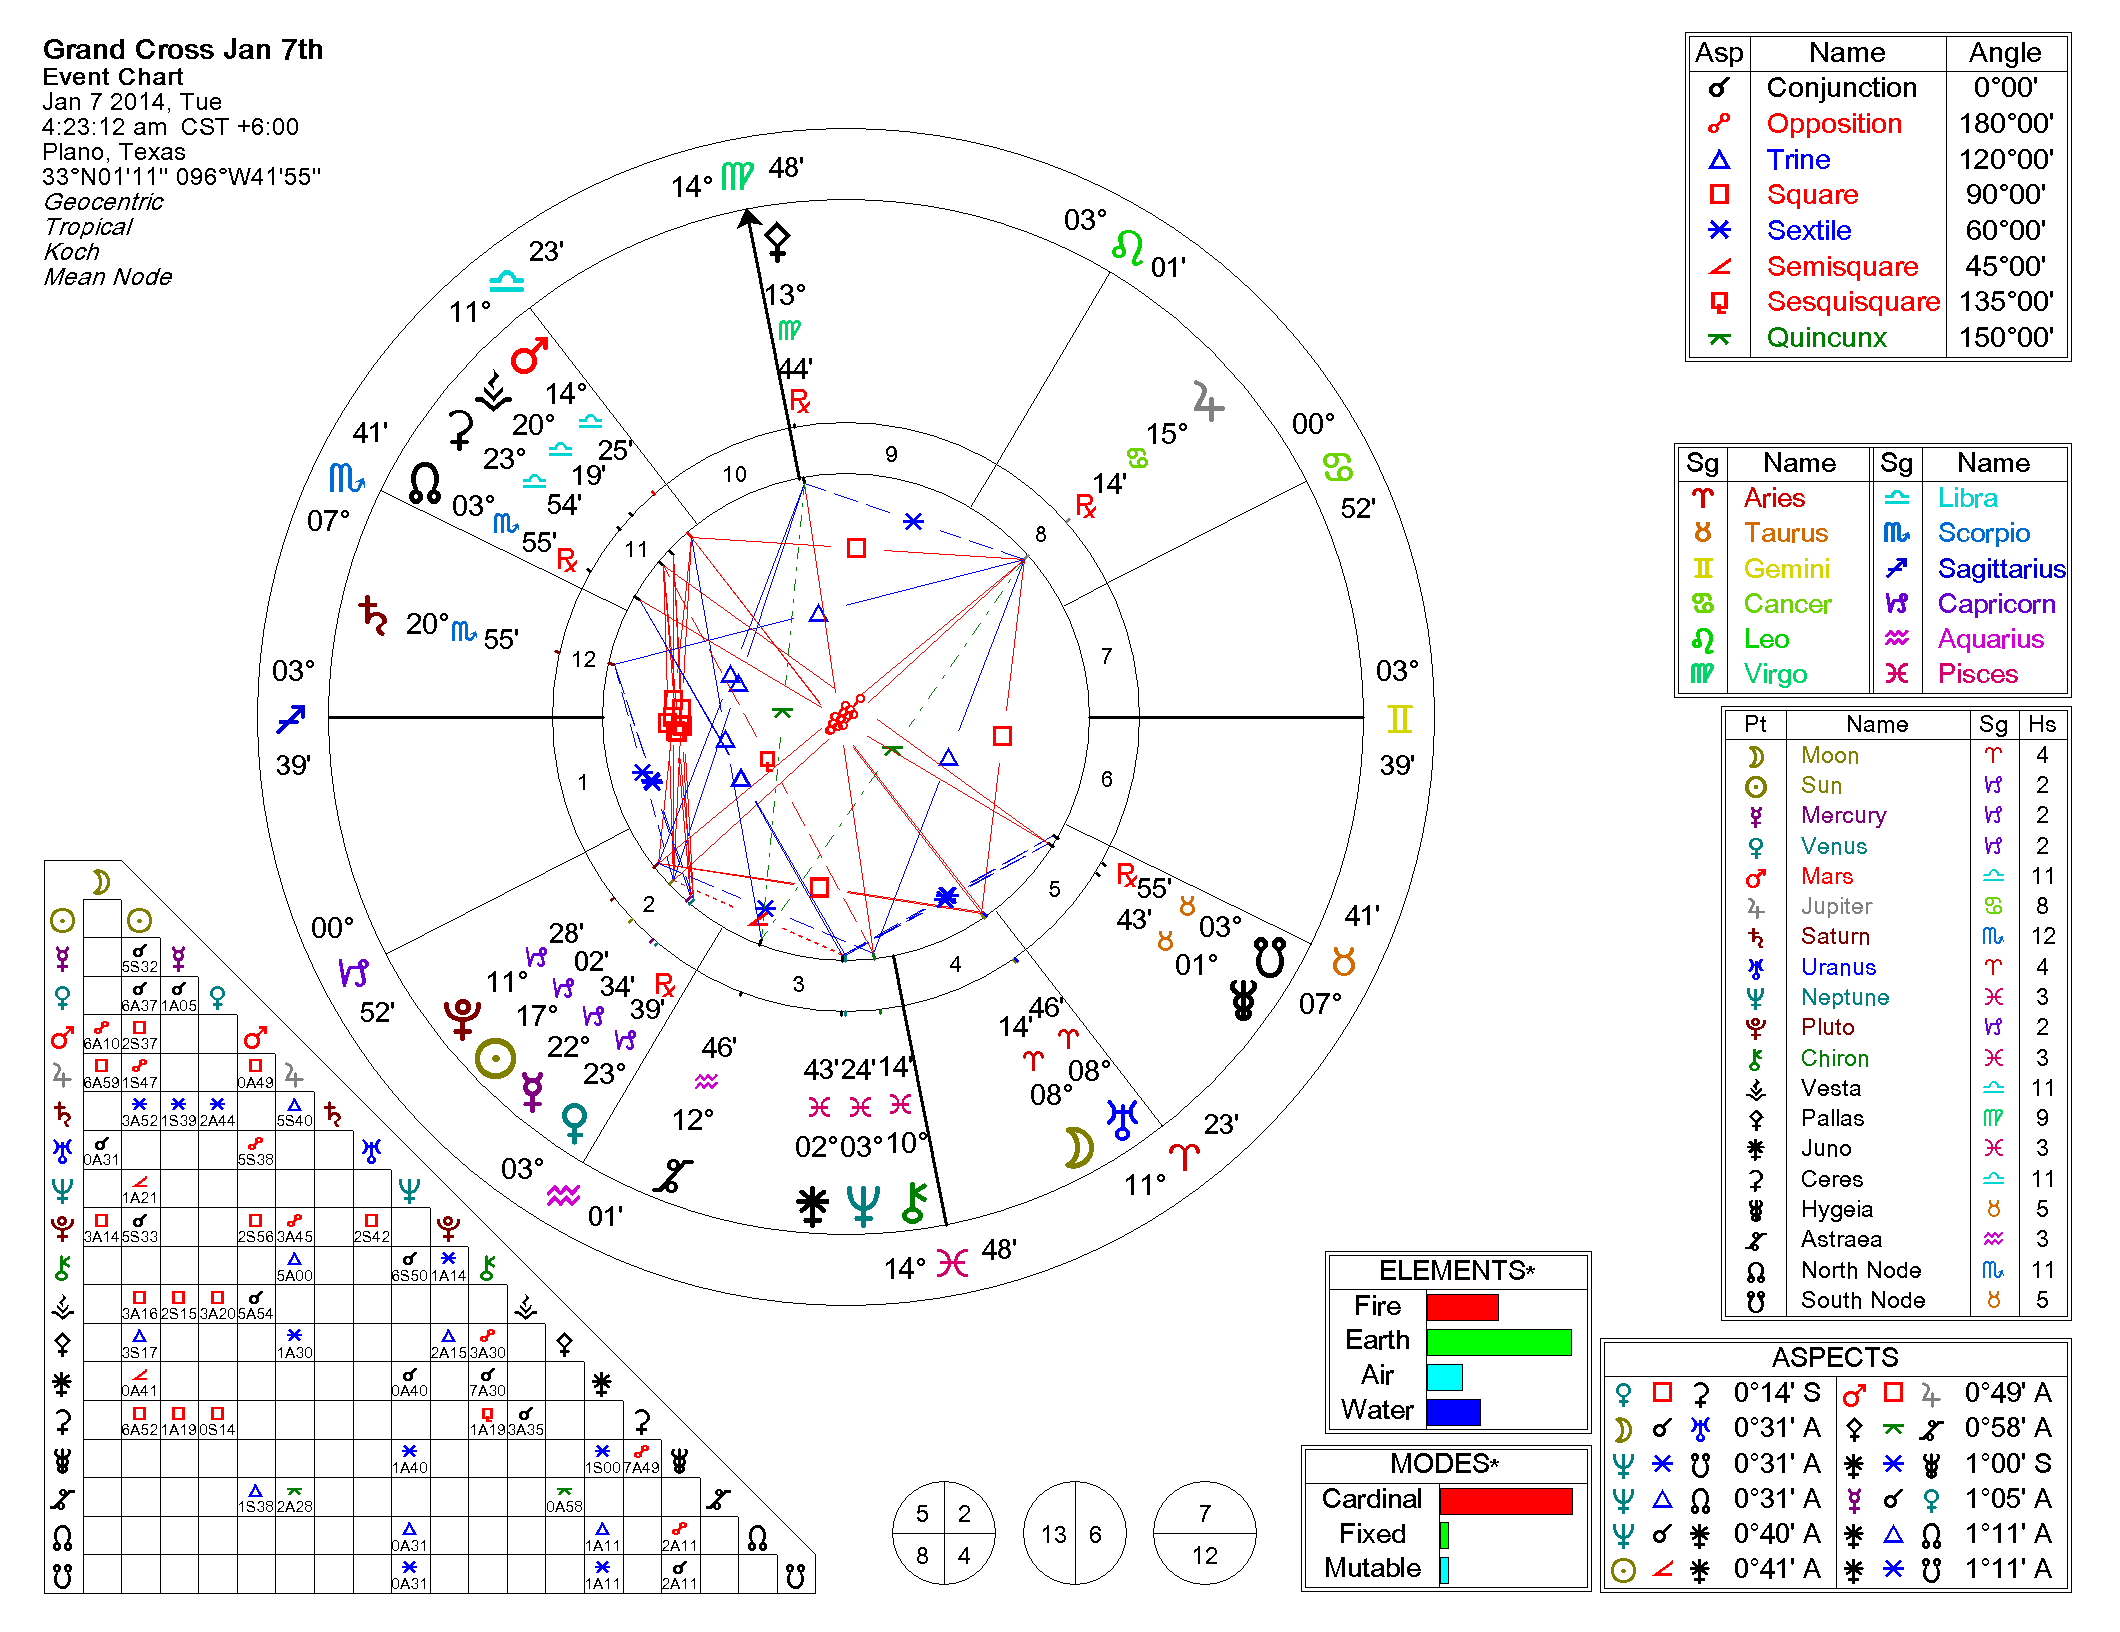 Famouspeople grandtrines grand cross jan 7th reg chart 1 6 2014 11 46 nvjuhfo Choice Image